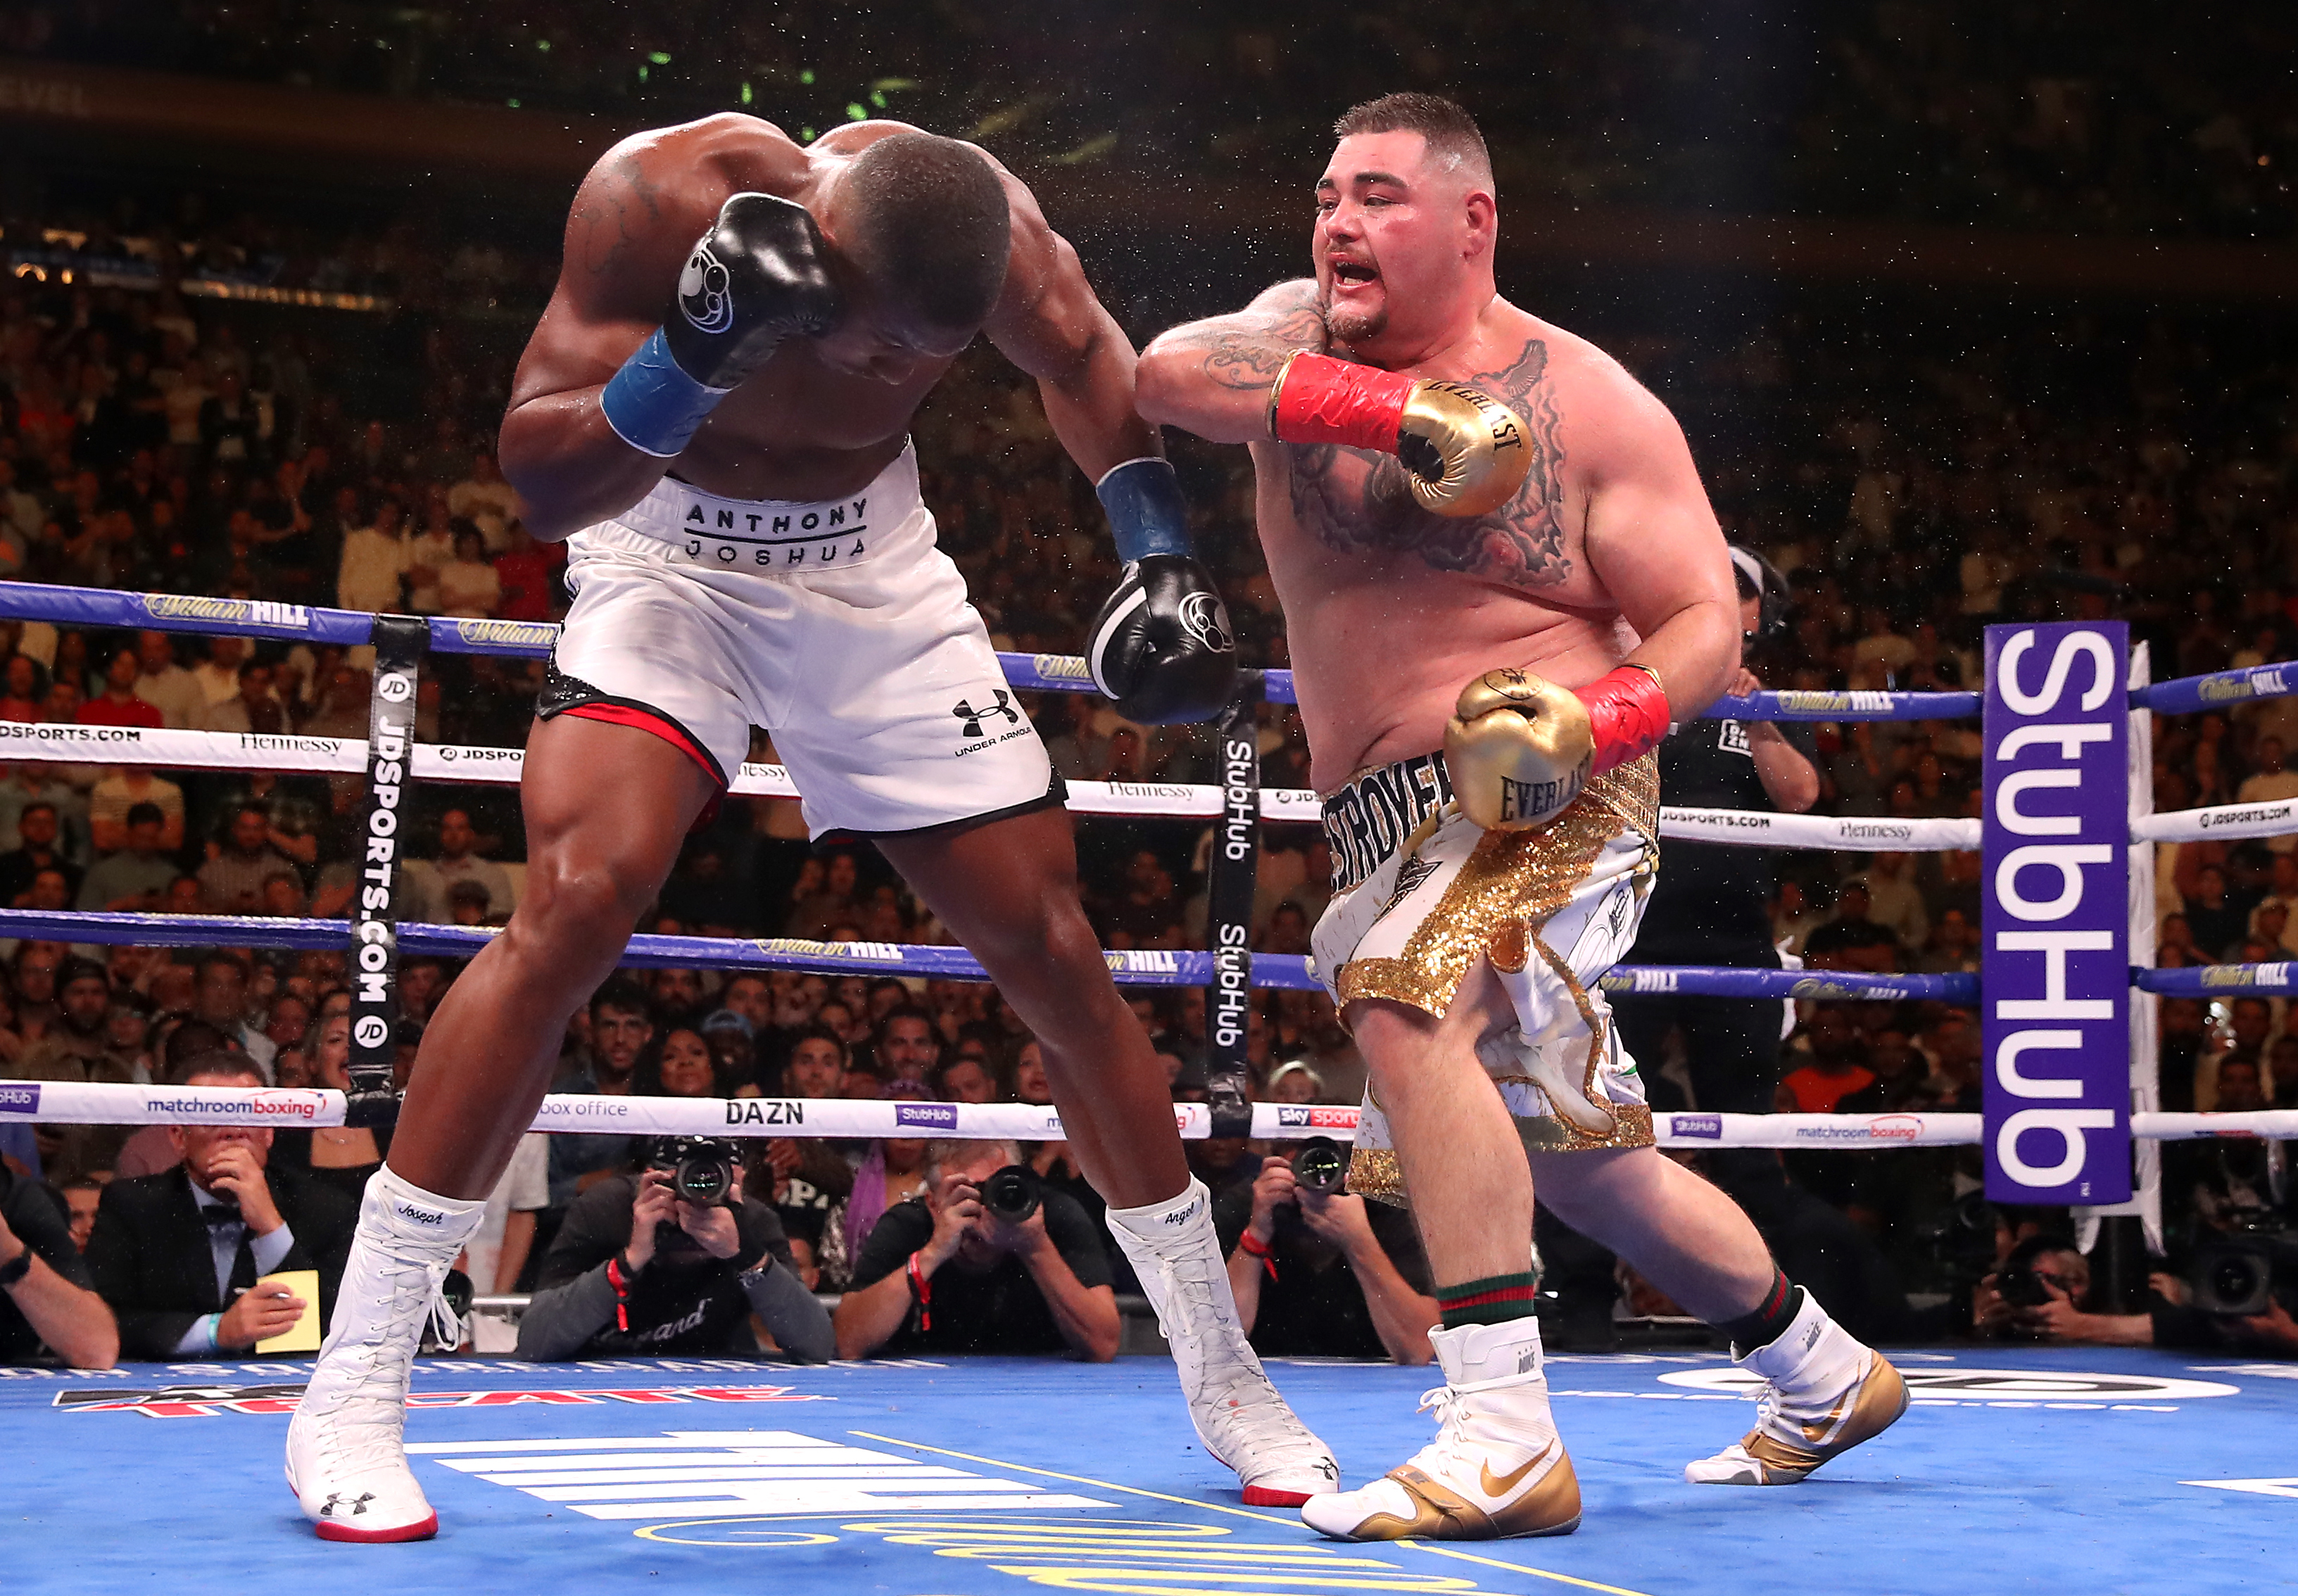 Joshua-Ruiz rematch set for Dec 7 in Saudi Arabia